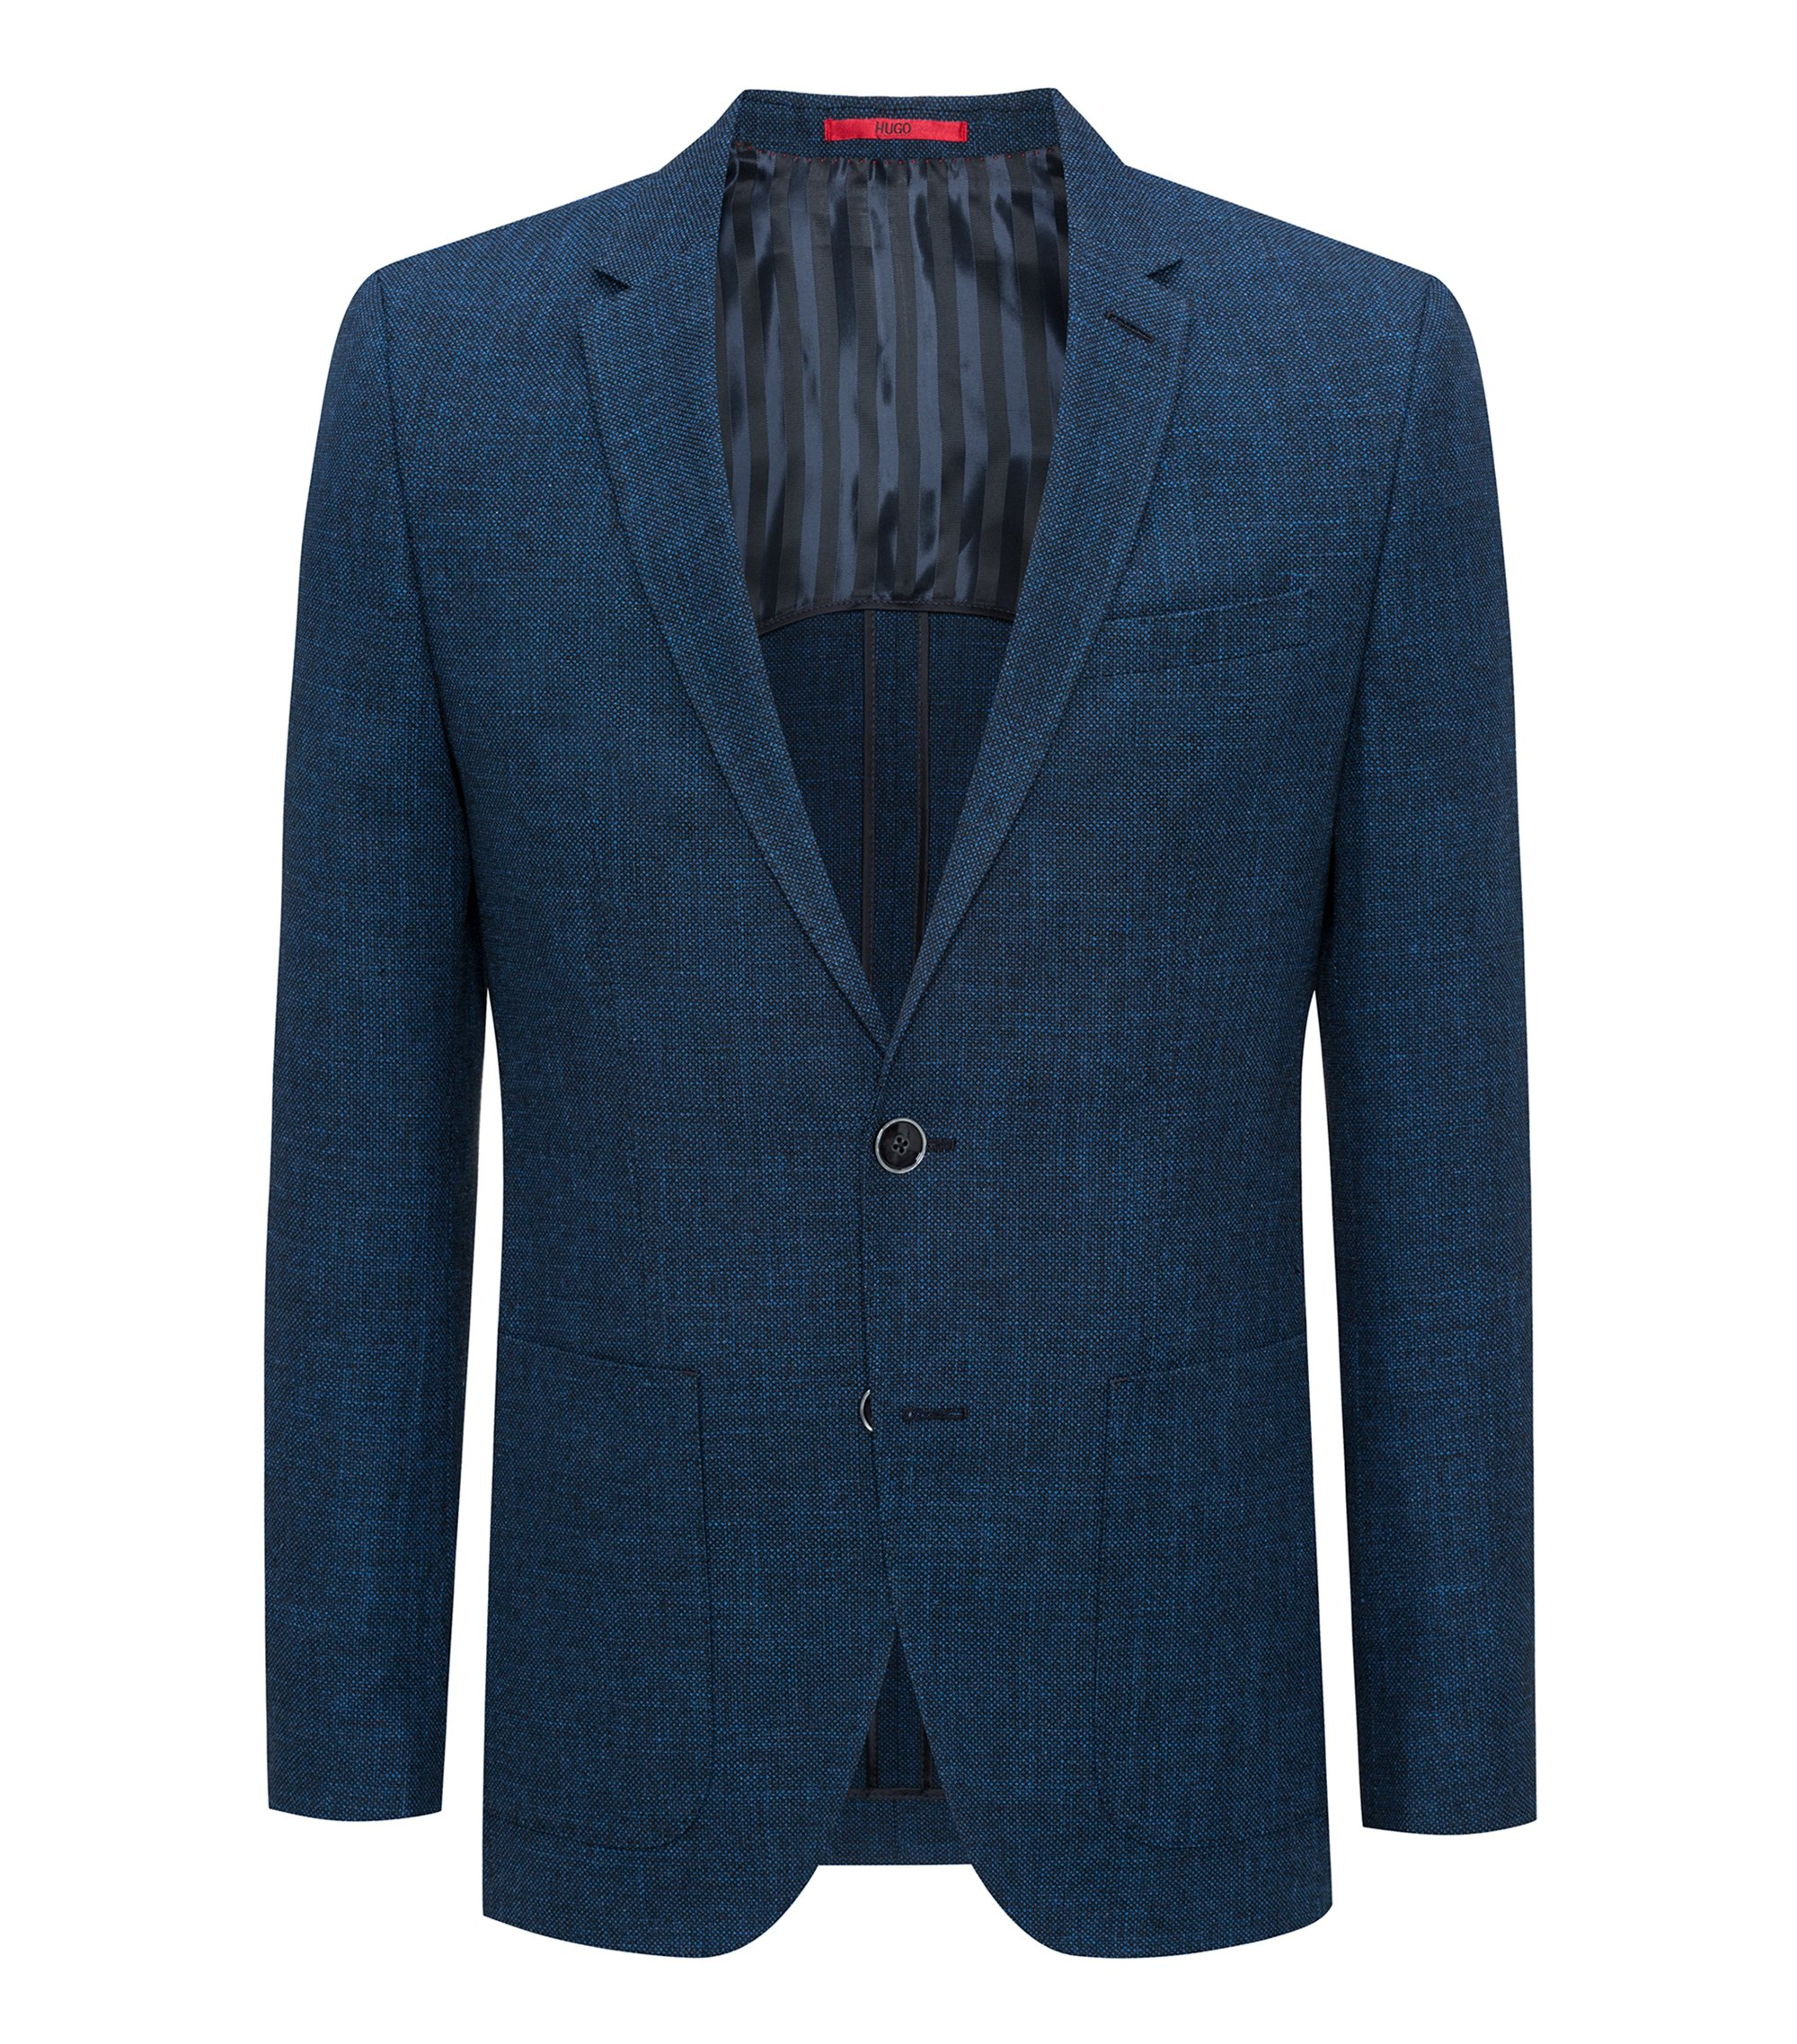 Slim-fit jacket in birdseye melange fabric, Blue